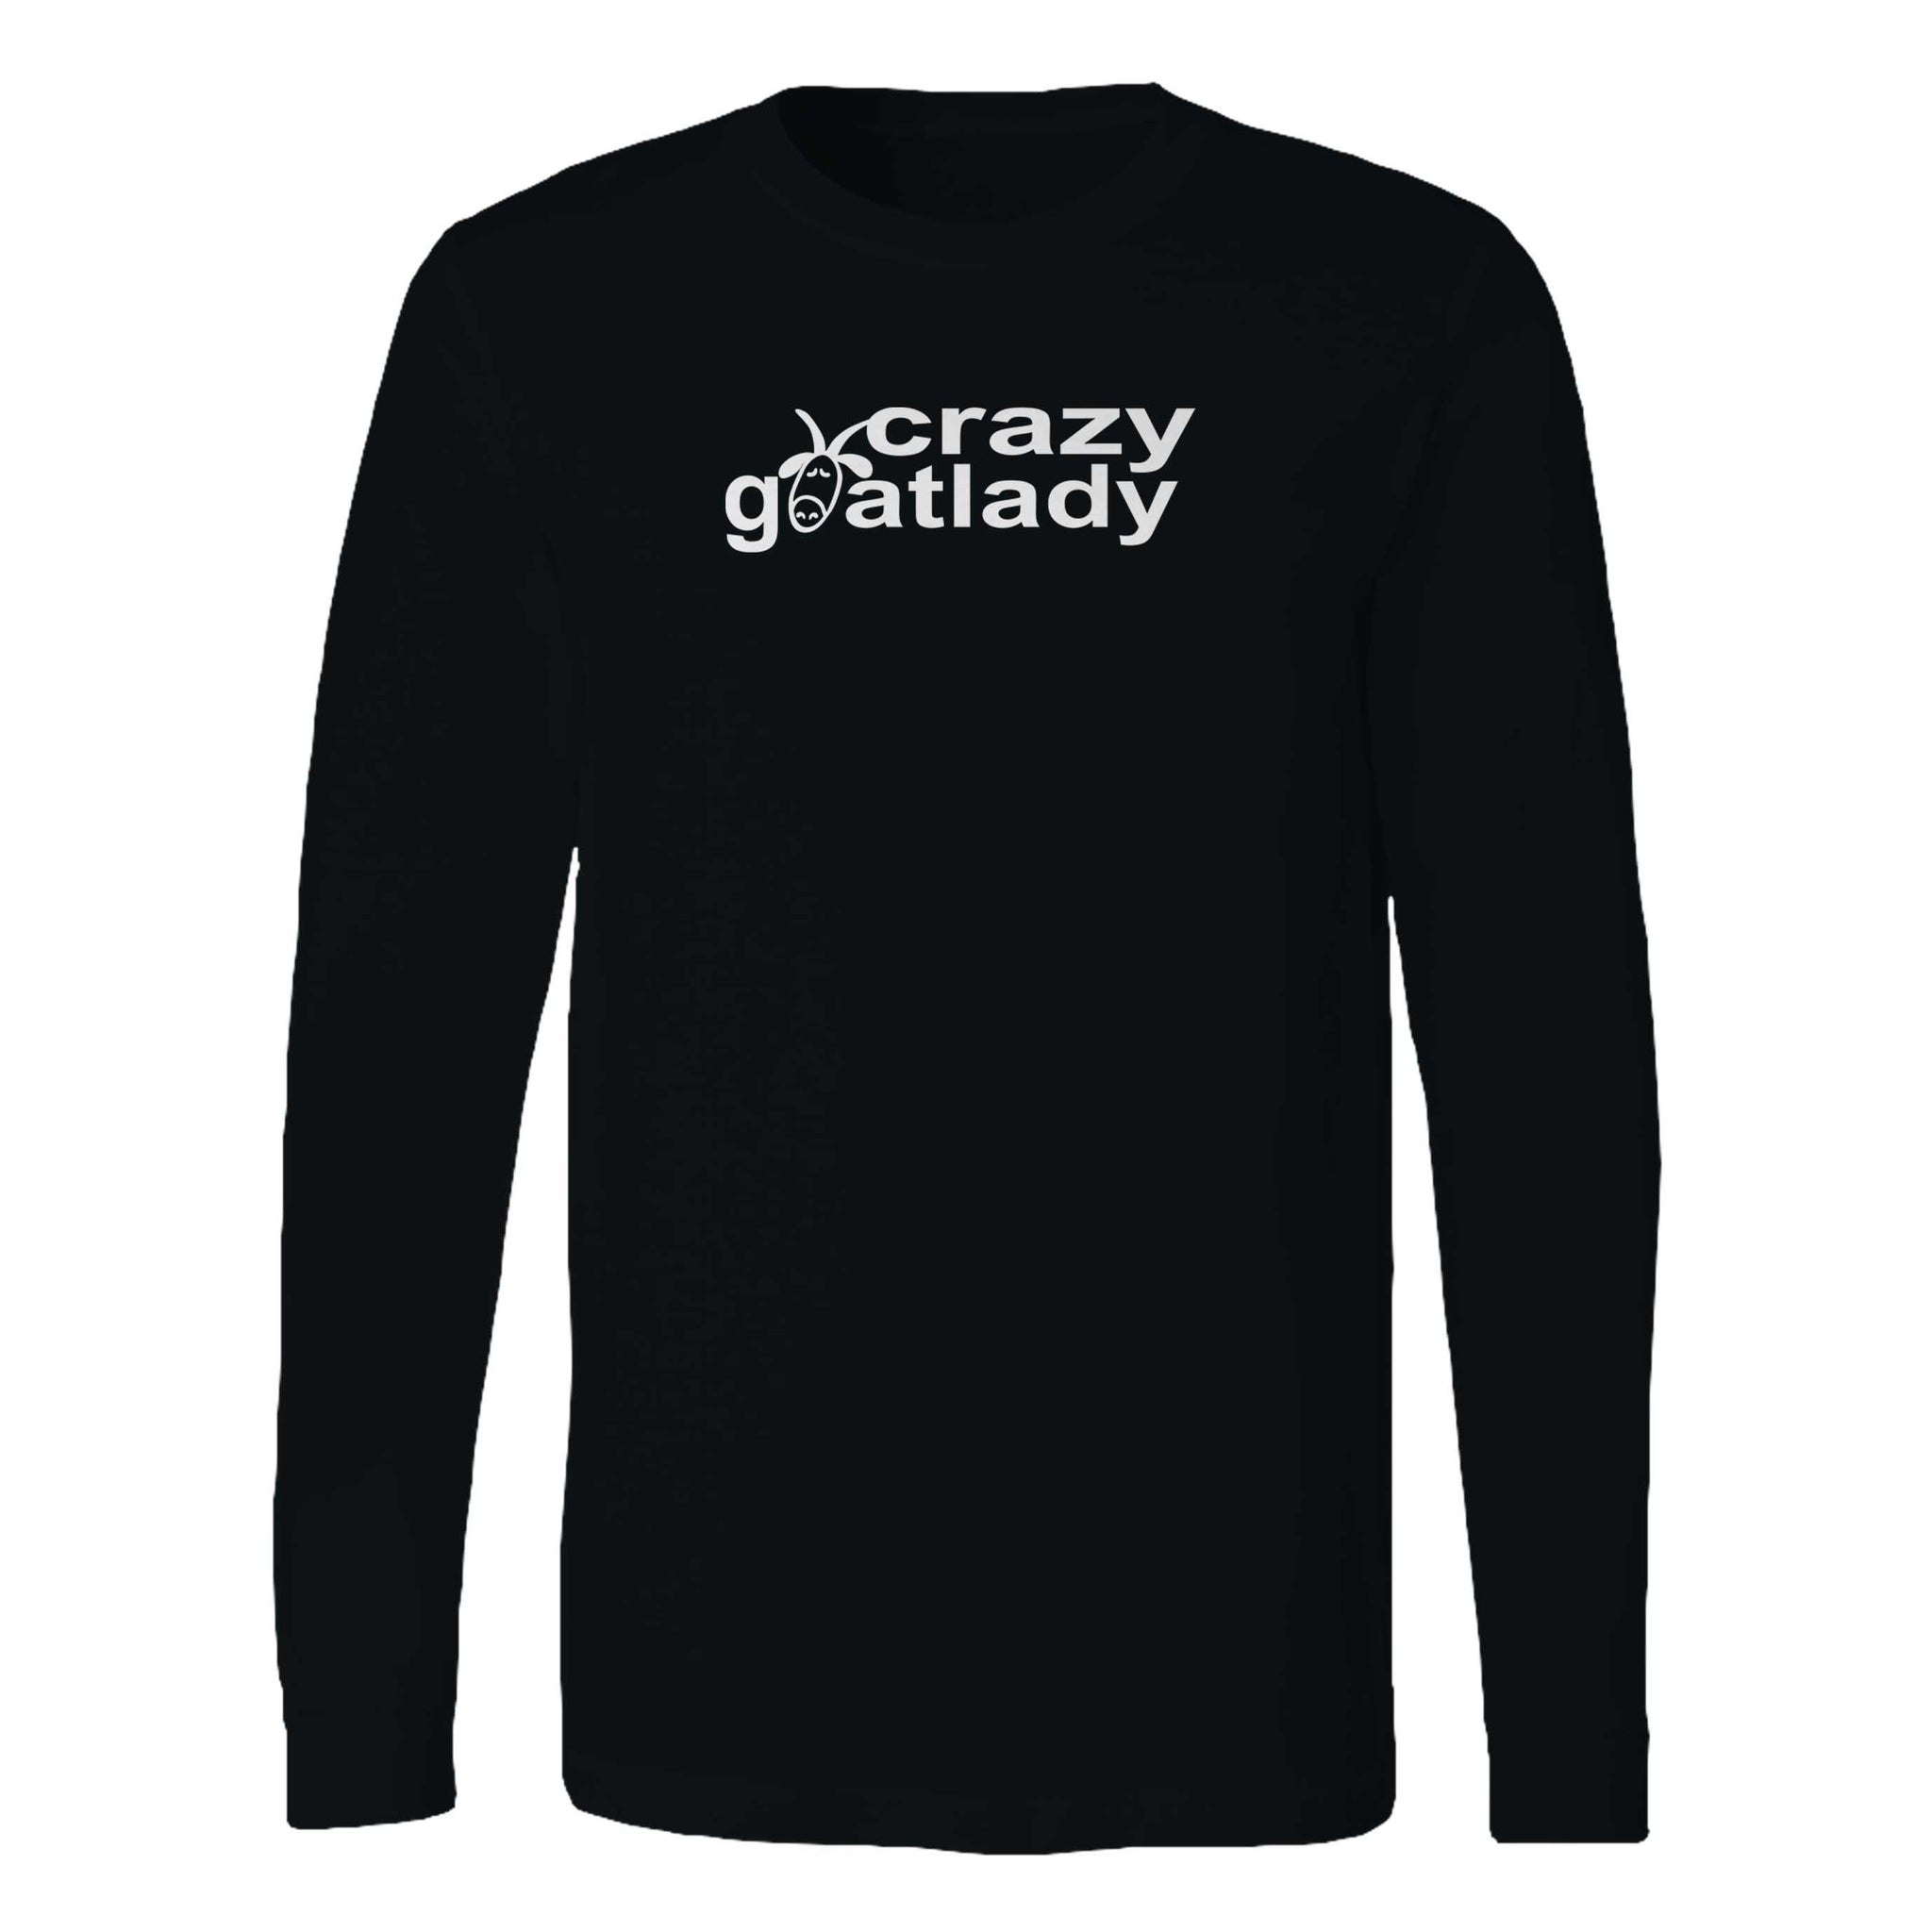 The Crazy Goat Lady Fun Goat Lovers Long Sleeve T-Shirt